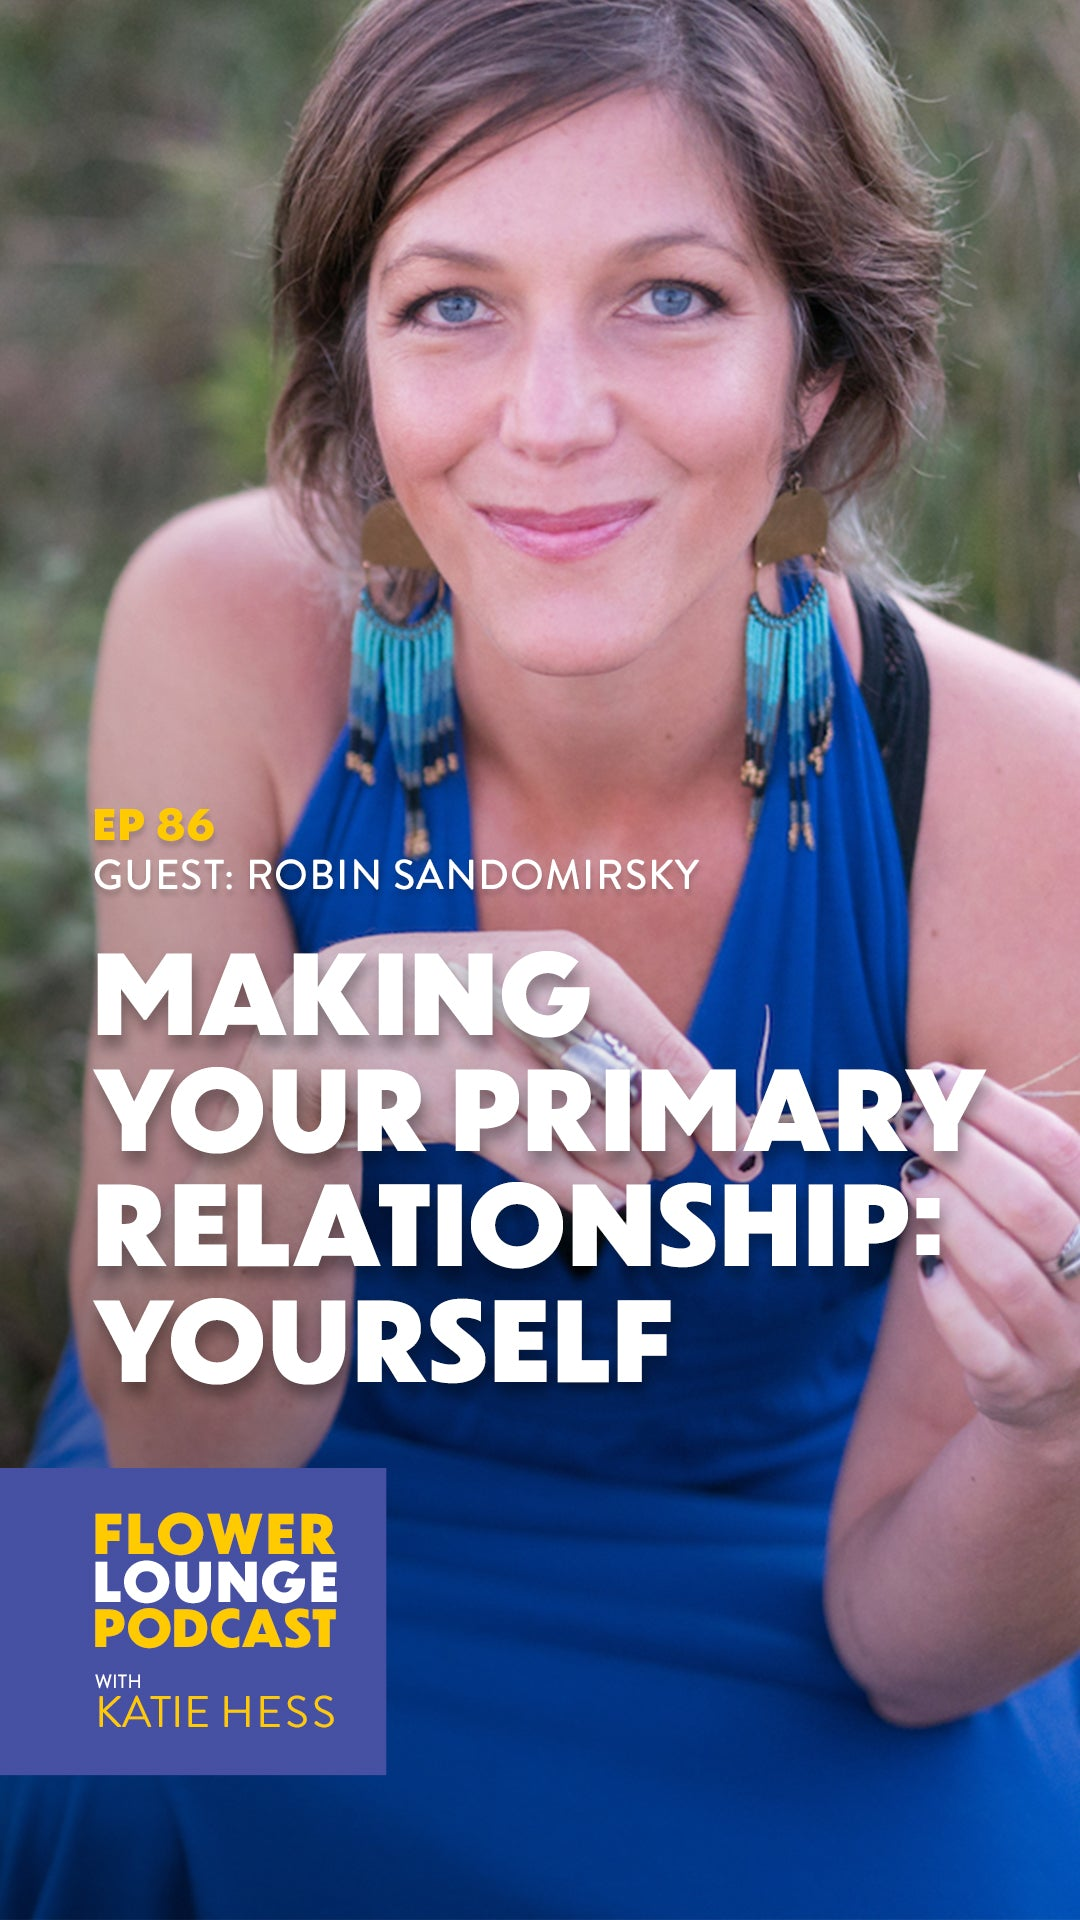 Making Your Primary Relationship: Yourself with Robin Sandomirsky on the Flowerlounge Podcast with Katie Hess